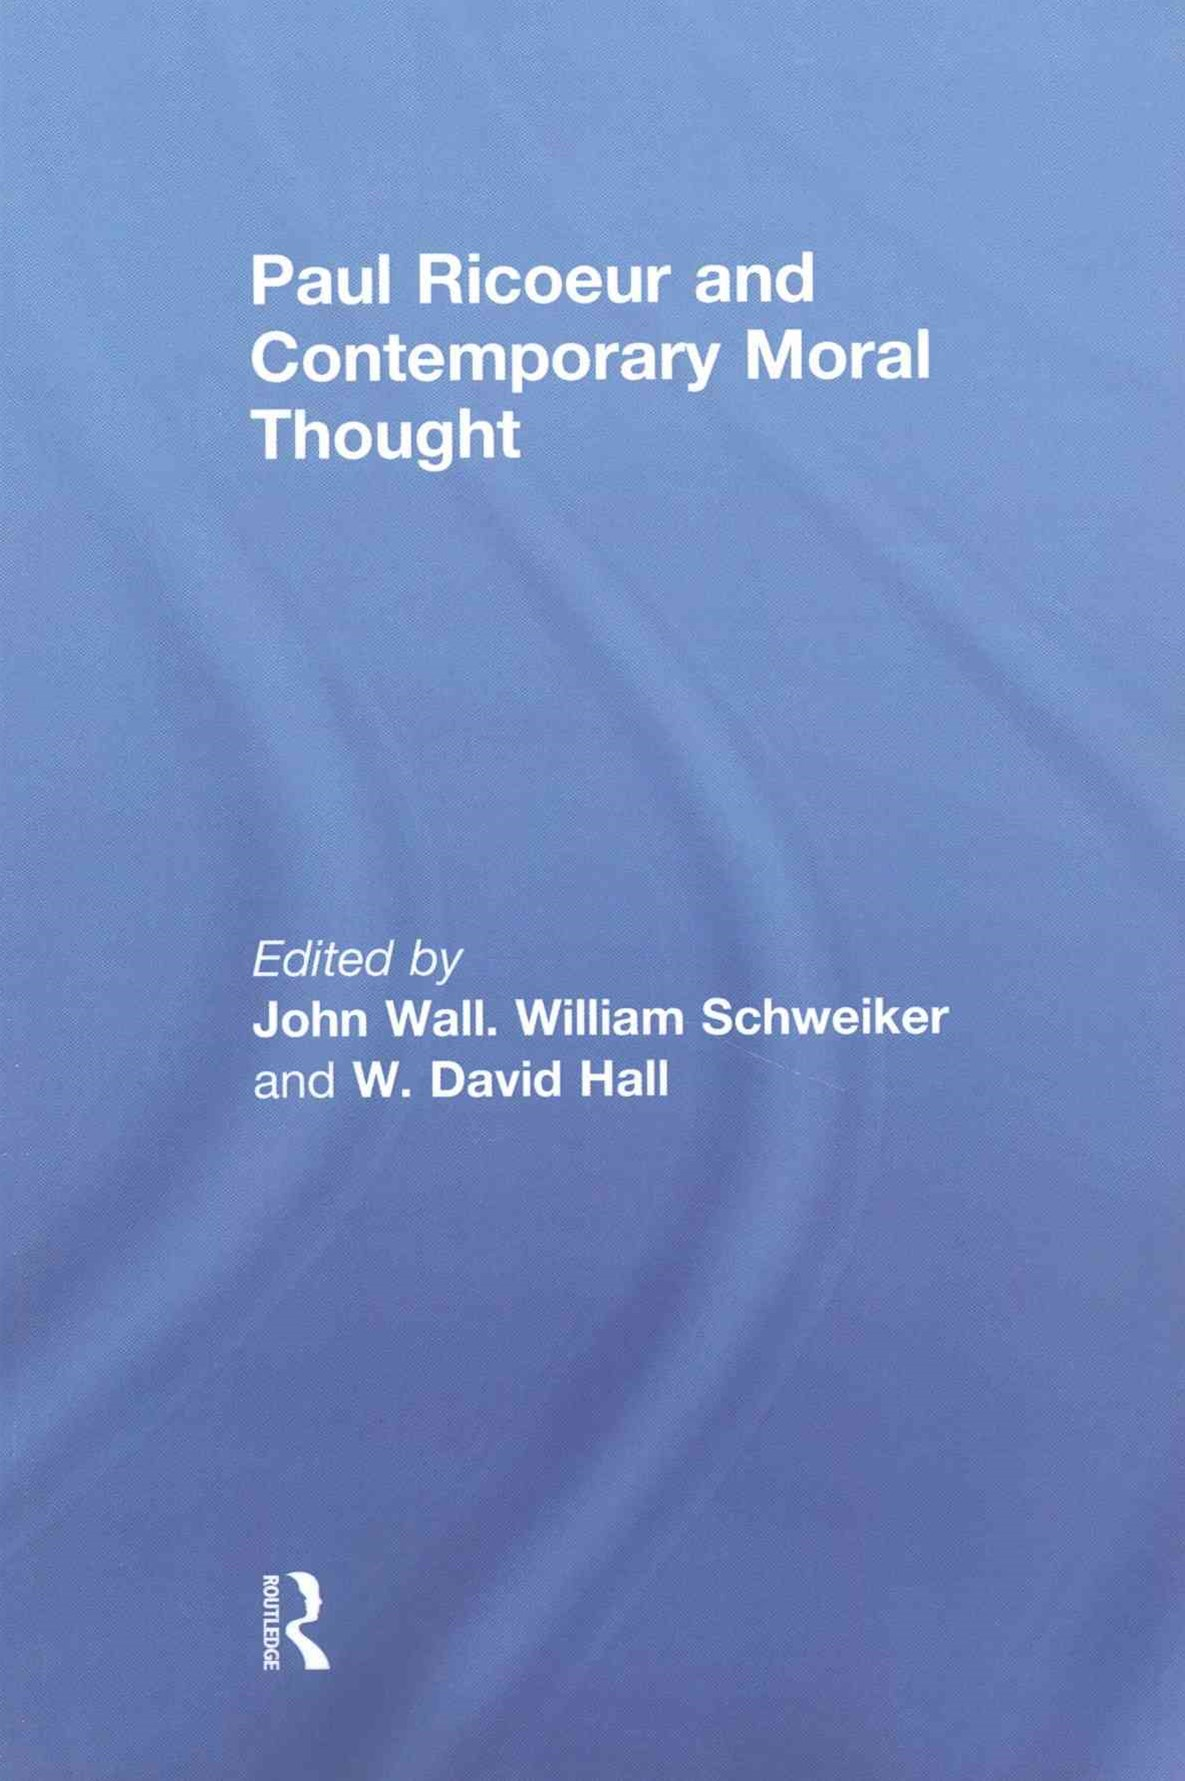 Paul Ricoeur and Contemporary Moral Thought